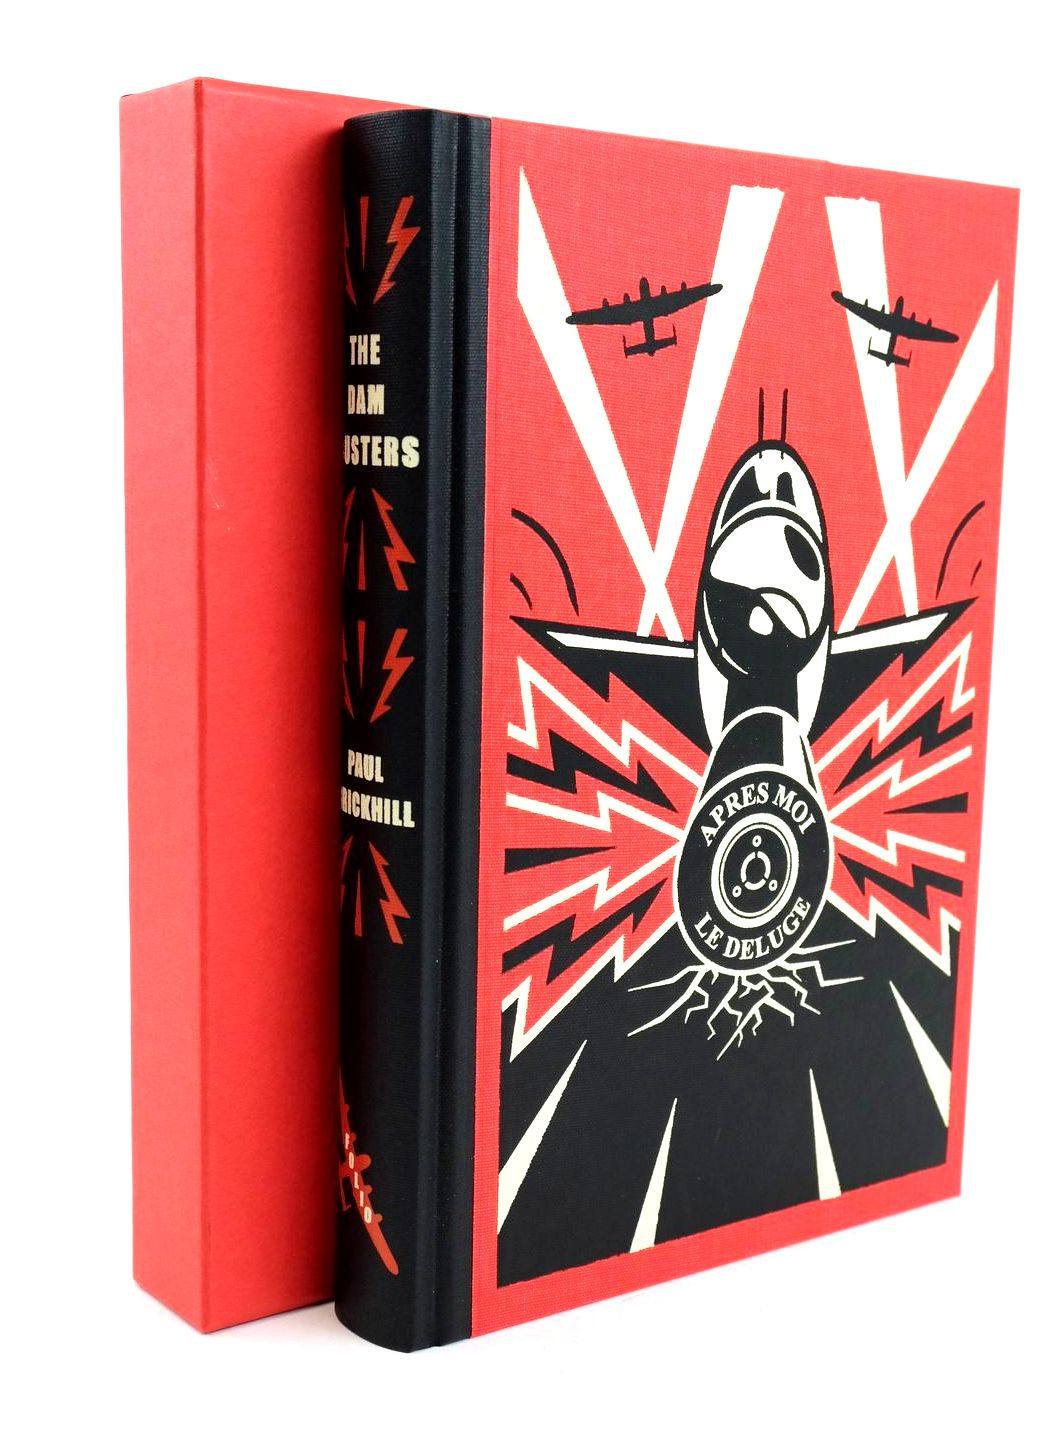 Photo of THE DAM BUSTERS written by Brickhill, Paul published by Folio Society (STOCK CODE: 1318881)  for sale by Stella & Rose's Books